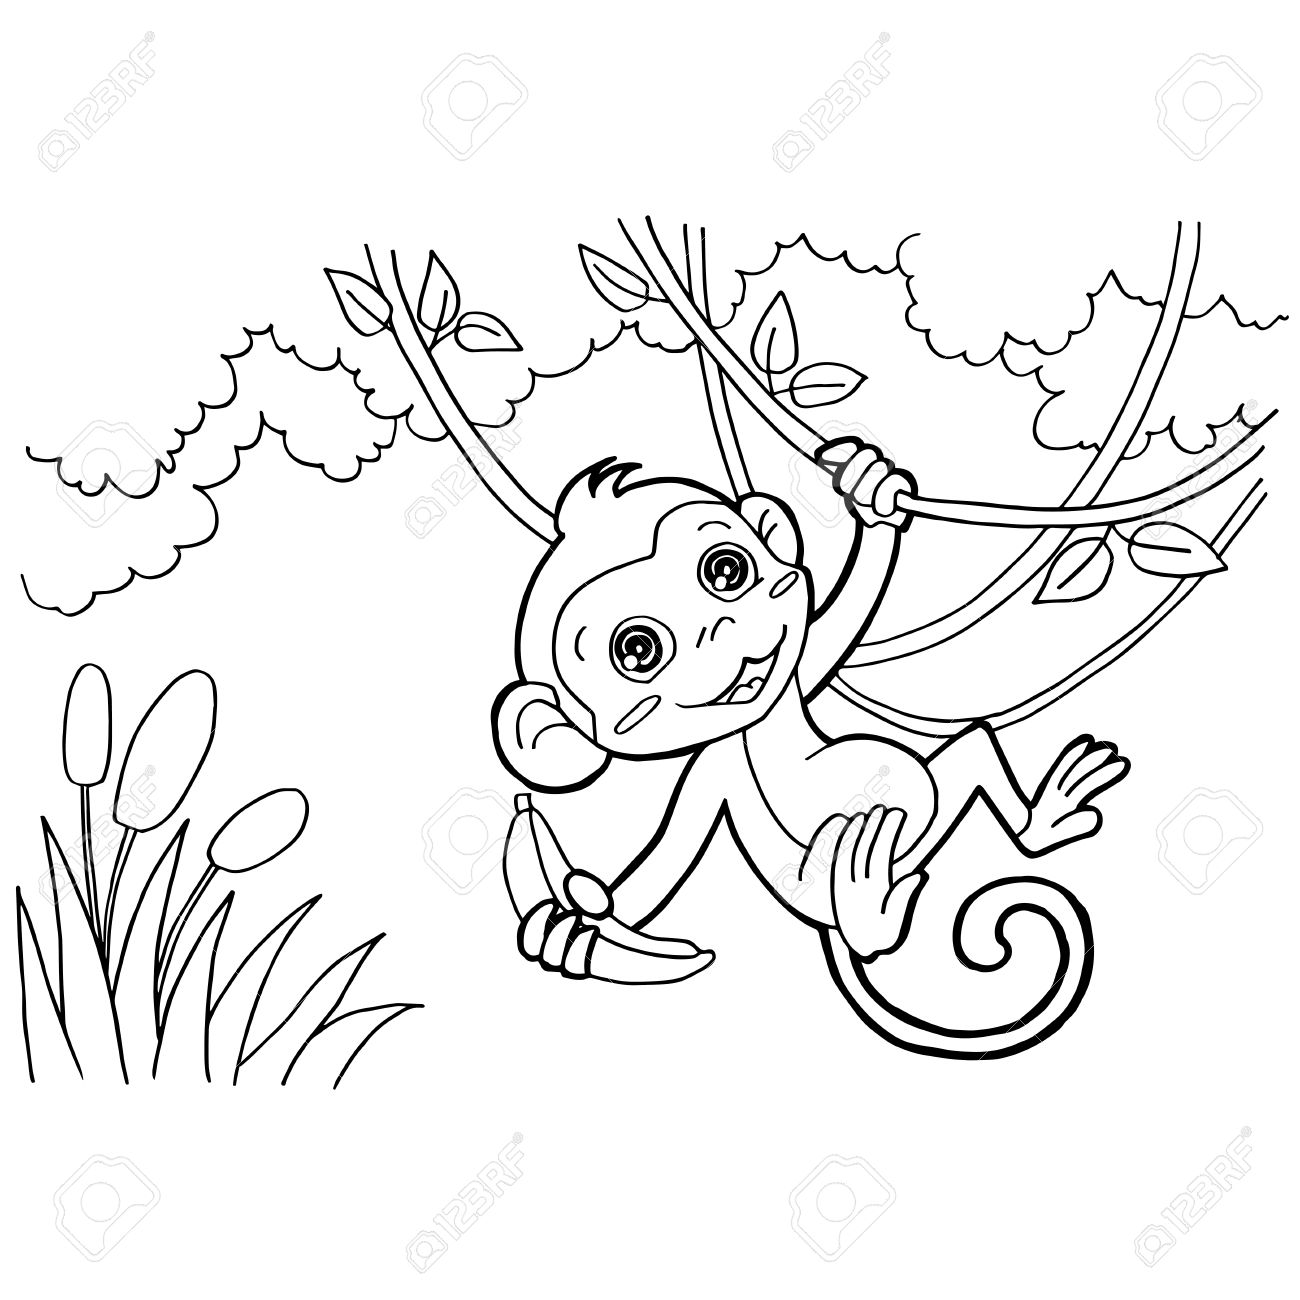 monkey cartoon coloring pages vector royalty free cliparts